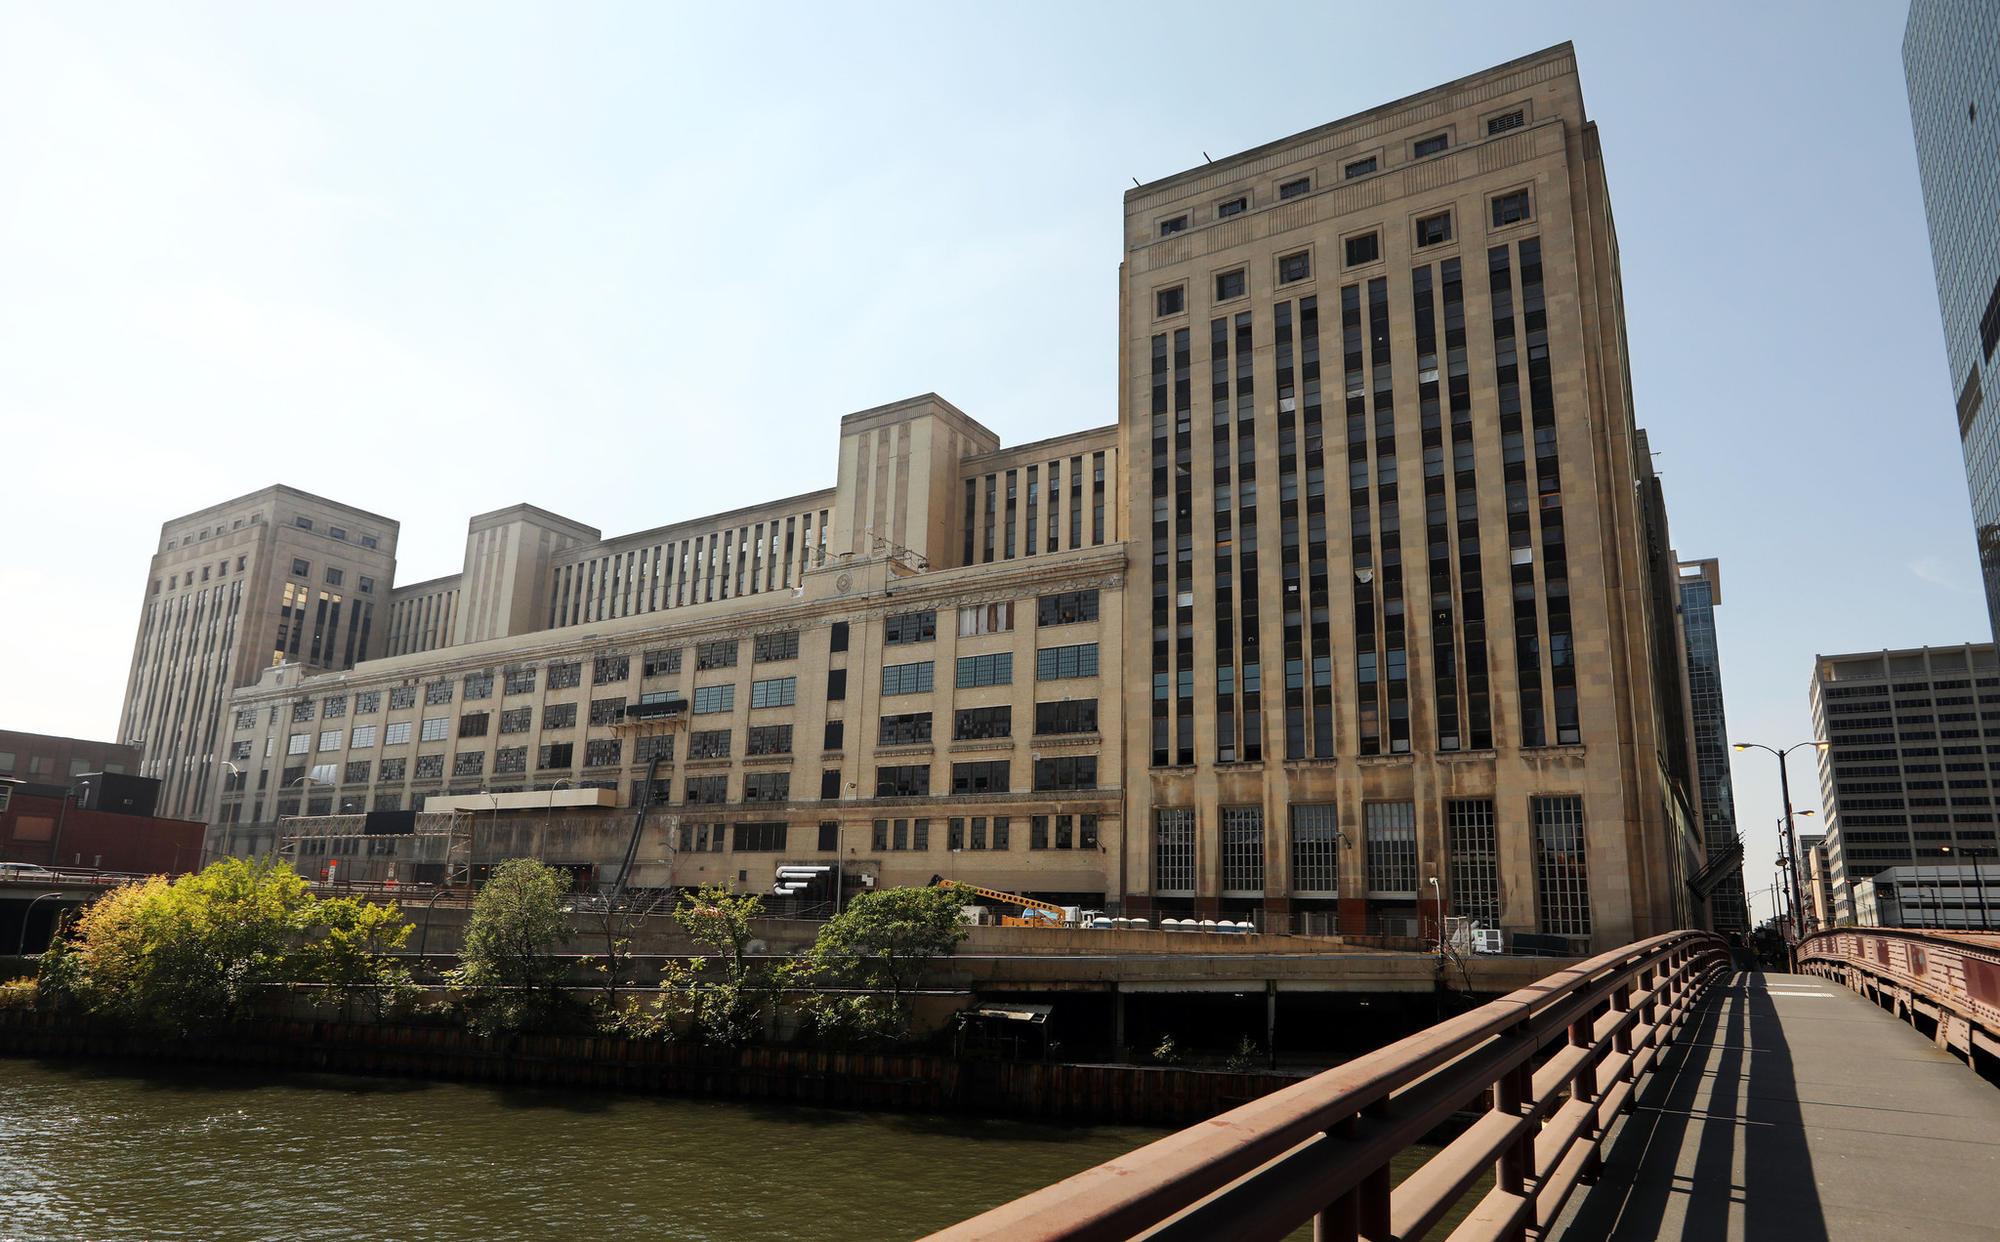 Walgreens To Move 1 800 Workers To Old Post Office Including 1 300 From Deerfield Hq Chicago